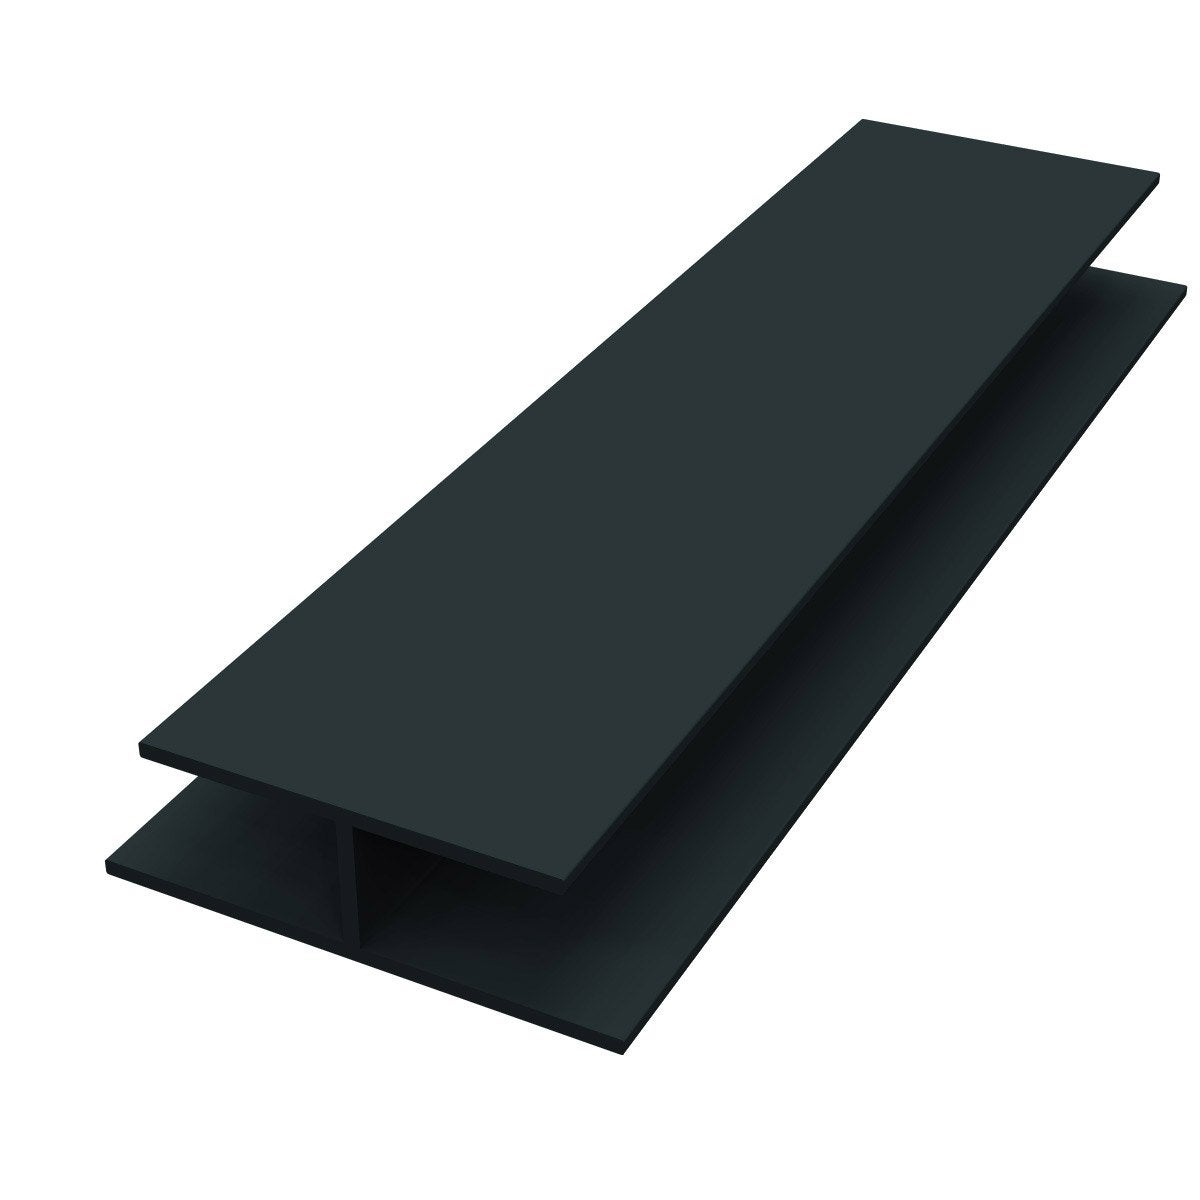 Profil de jonction pvc gris anthracite 3 m leroy merlin for Portillon pvc gris anthracite